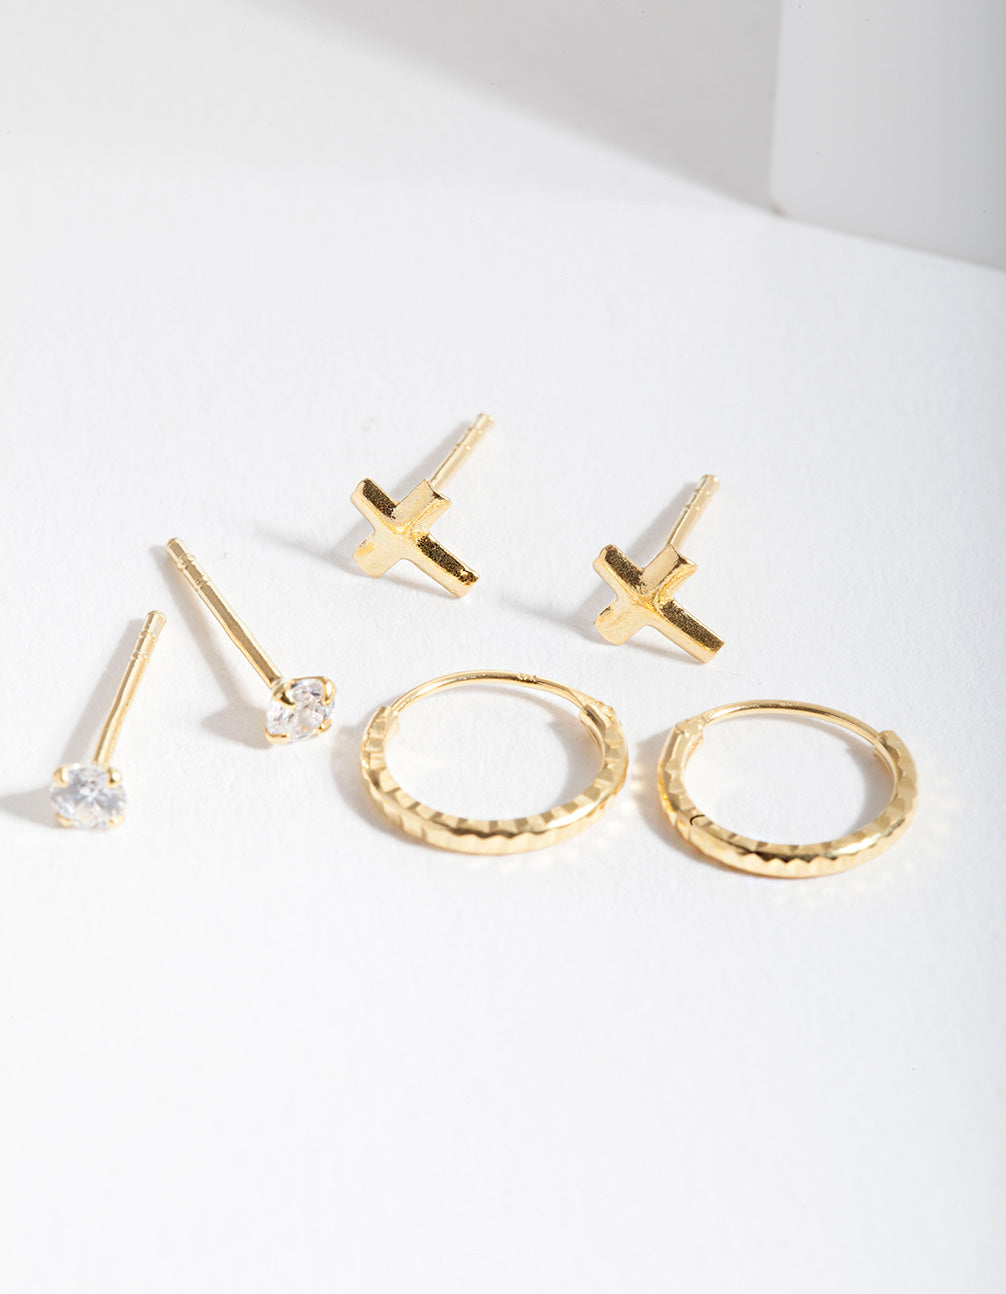 Gold Plated Sterling Silver Cubic Zirconia Cross Earring 3 Pack